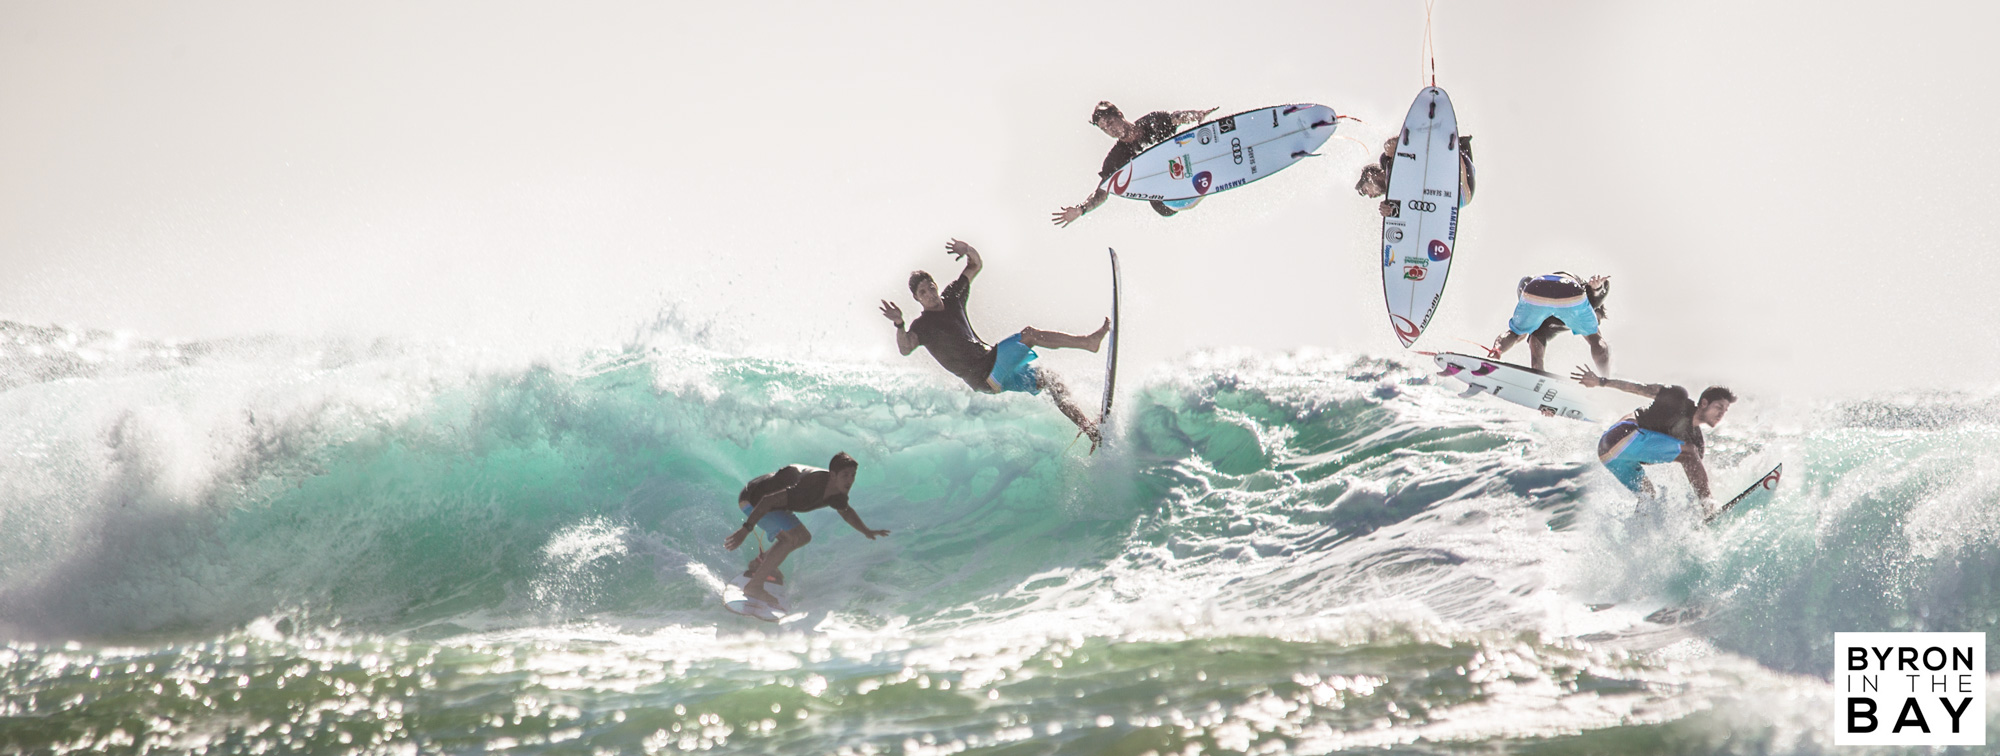 Surf in Byron Bay. Photography of Gabriel Medina at Tallow Beach and Broken Head